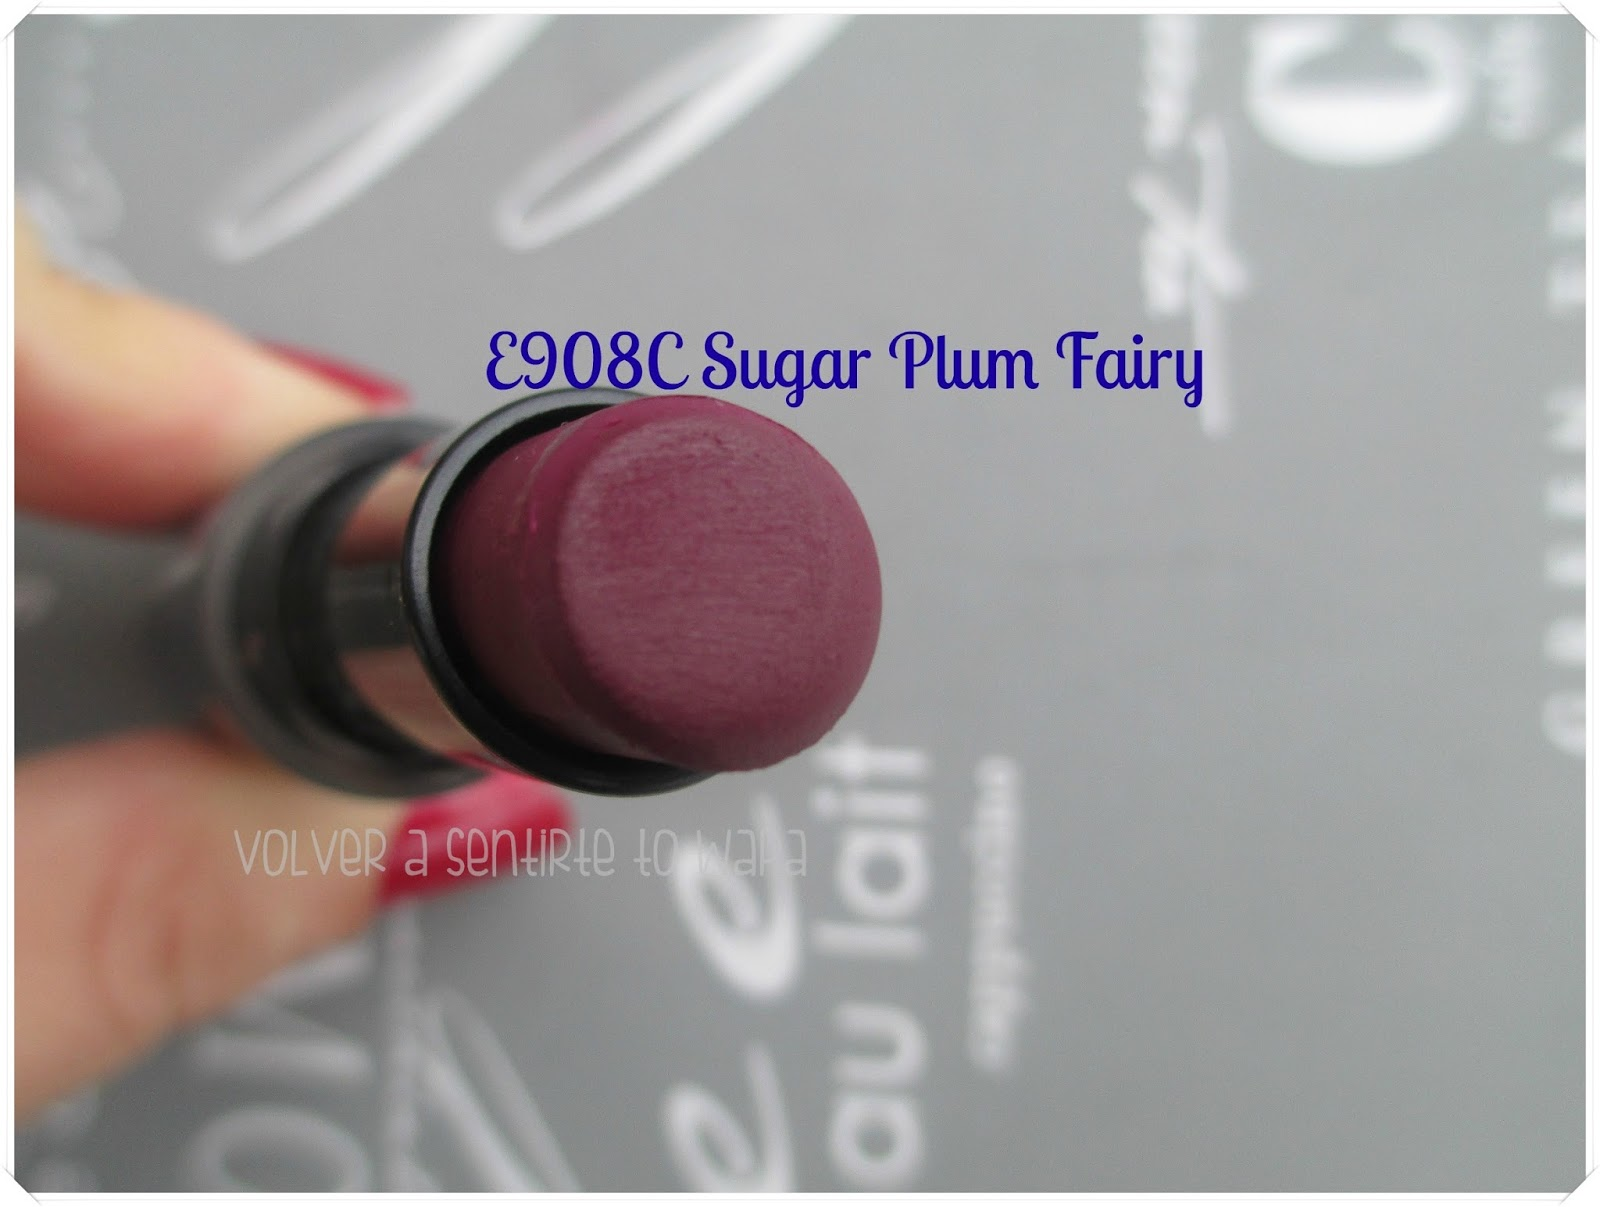 Labiales MegaLast Lip Color de Wet n' Wild - E908C Sugar Plum Fairy